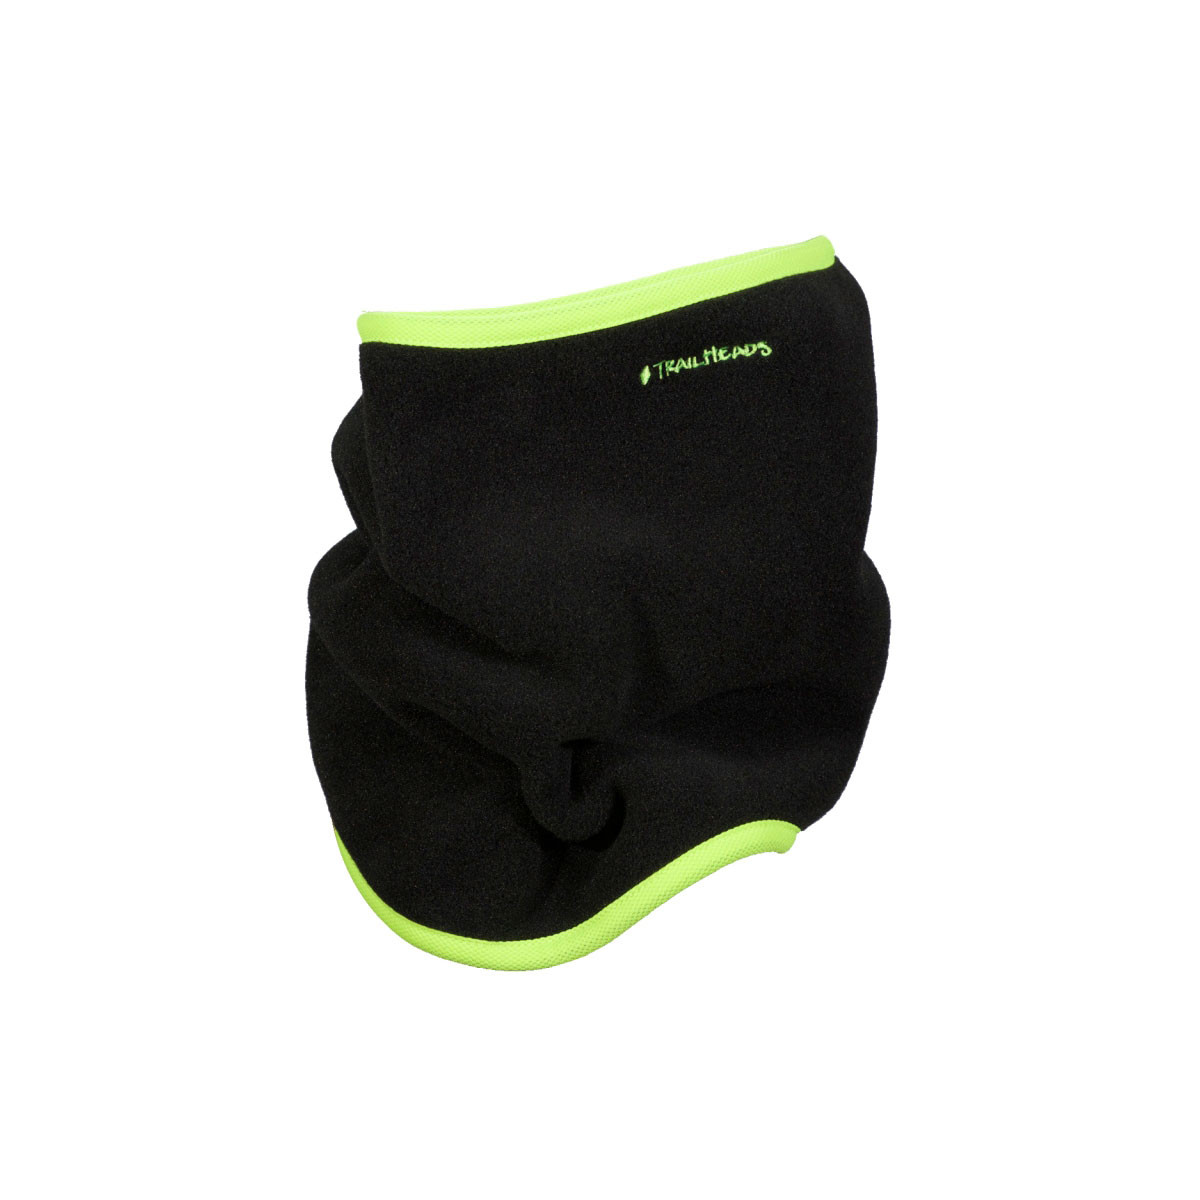 Fleece Neck Warmer/Gaiter - black / hi-vis